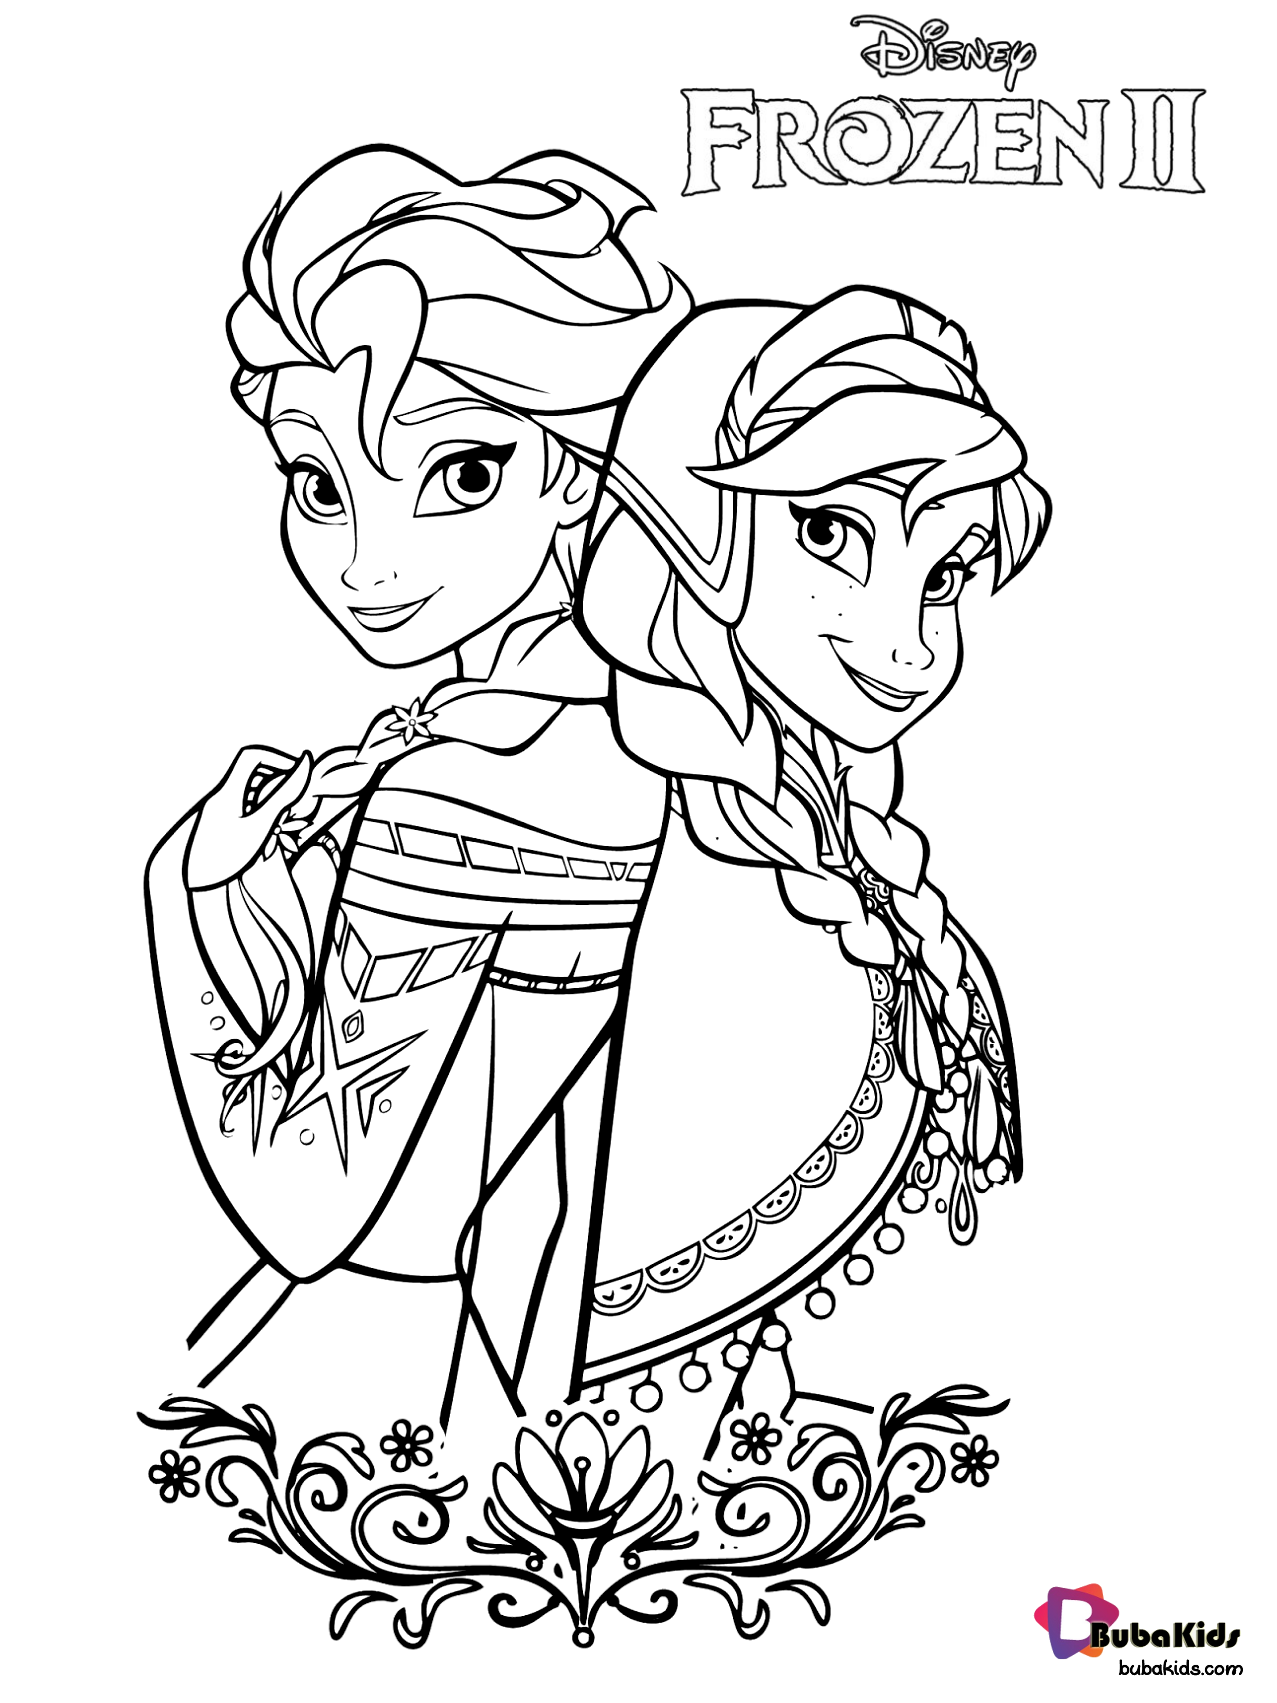 Free Download And Printable Coloring Pages Frozen 2 Coloring Pages Queen Elsa And An Disney Princess Coloring Pages Elsa Coloring Pages Disney Coloring Pages